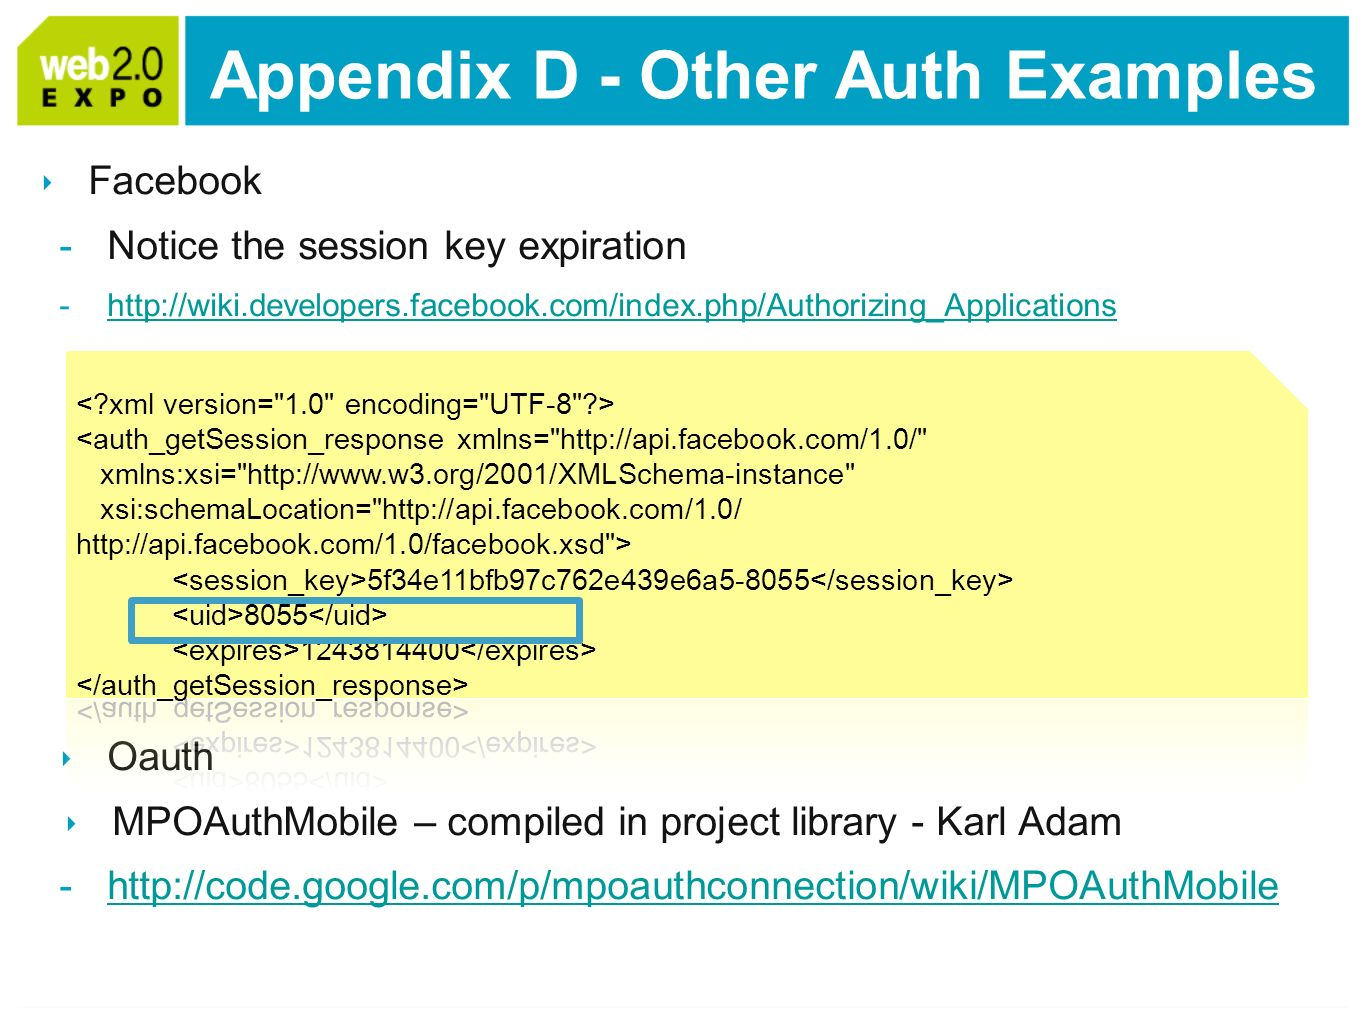 Facebook -Notice the session key expiration -http://wiki.developers.facebook.com/index.php/Authorizing_Applicationshttp://wiki.developers.facebook.com/index.php/Authorizing_Applications Oauth MPOAuthMobile – compiled in project library - Karl Adam -http://code.google.com/p/mpoauthconnection/wiki/MPOAuthMobilehttp://code.google.com/p/mpoauthconnection/wiki/MPOAuthMobile Appendix D - Other Auth Examples